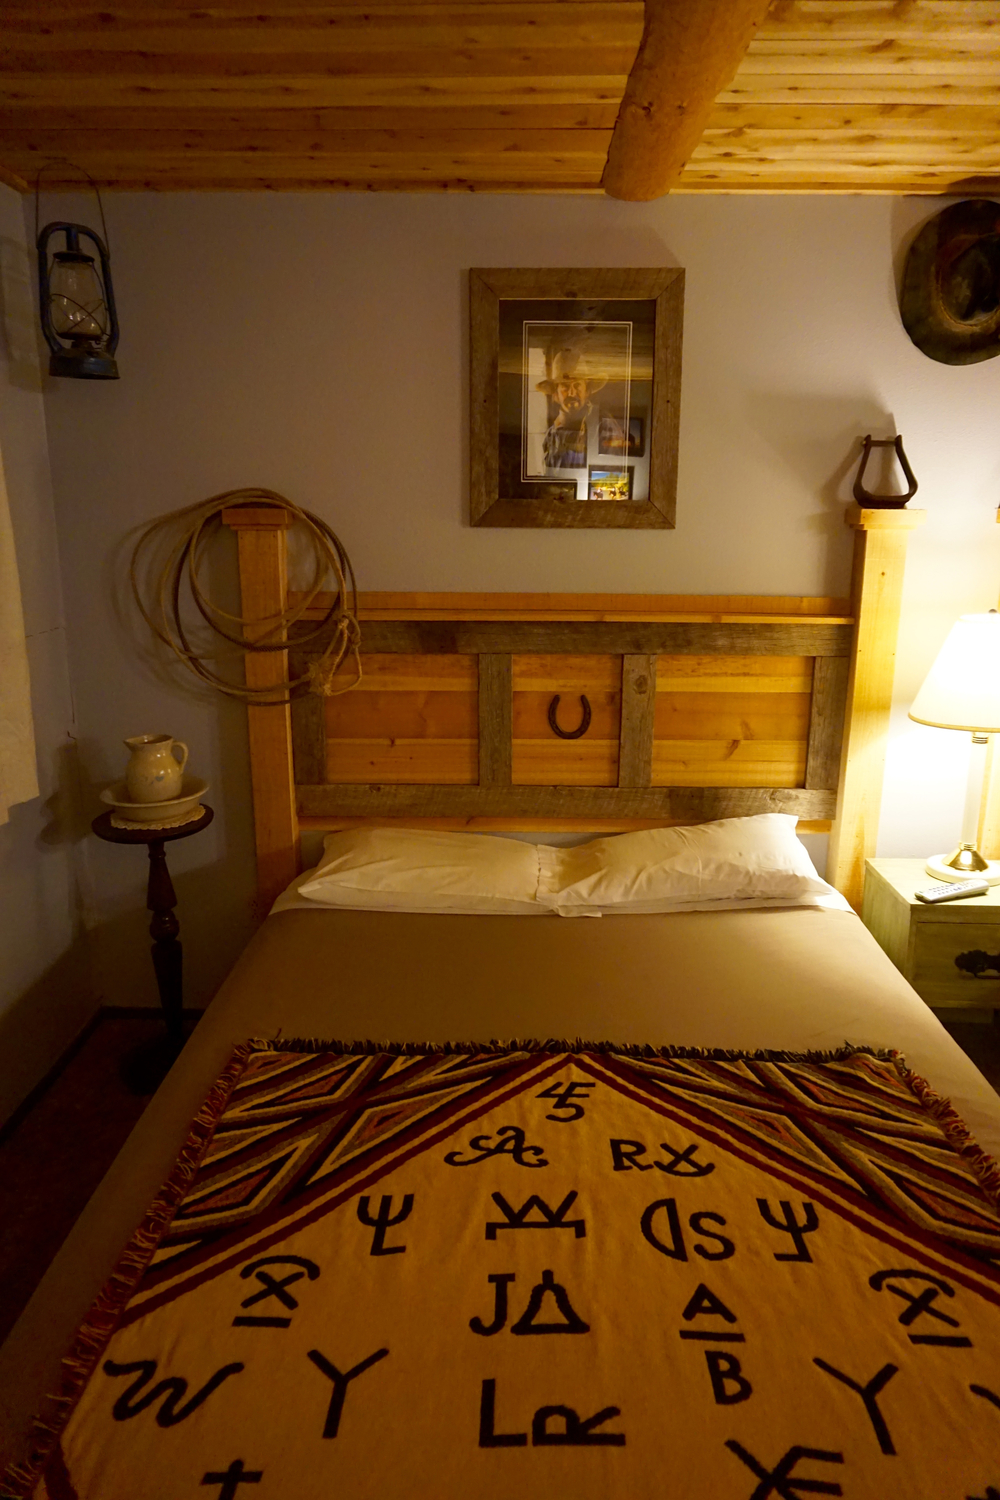 Stagecoach Inn, Route 66, Seligman, Arizona